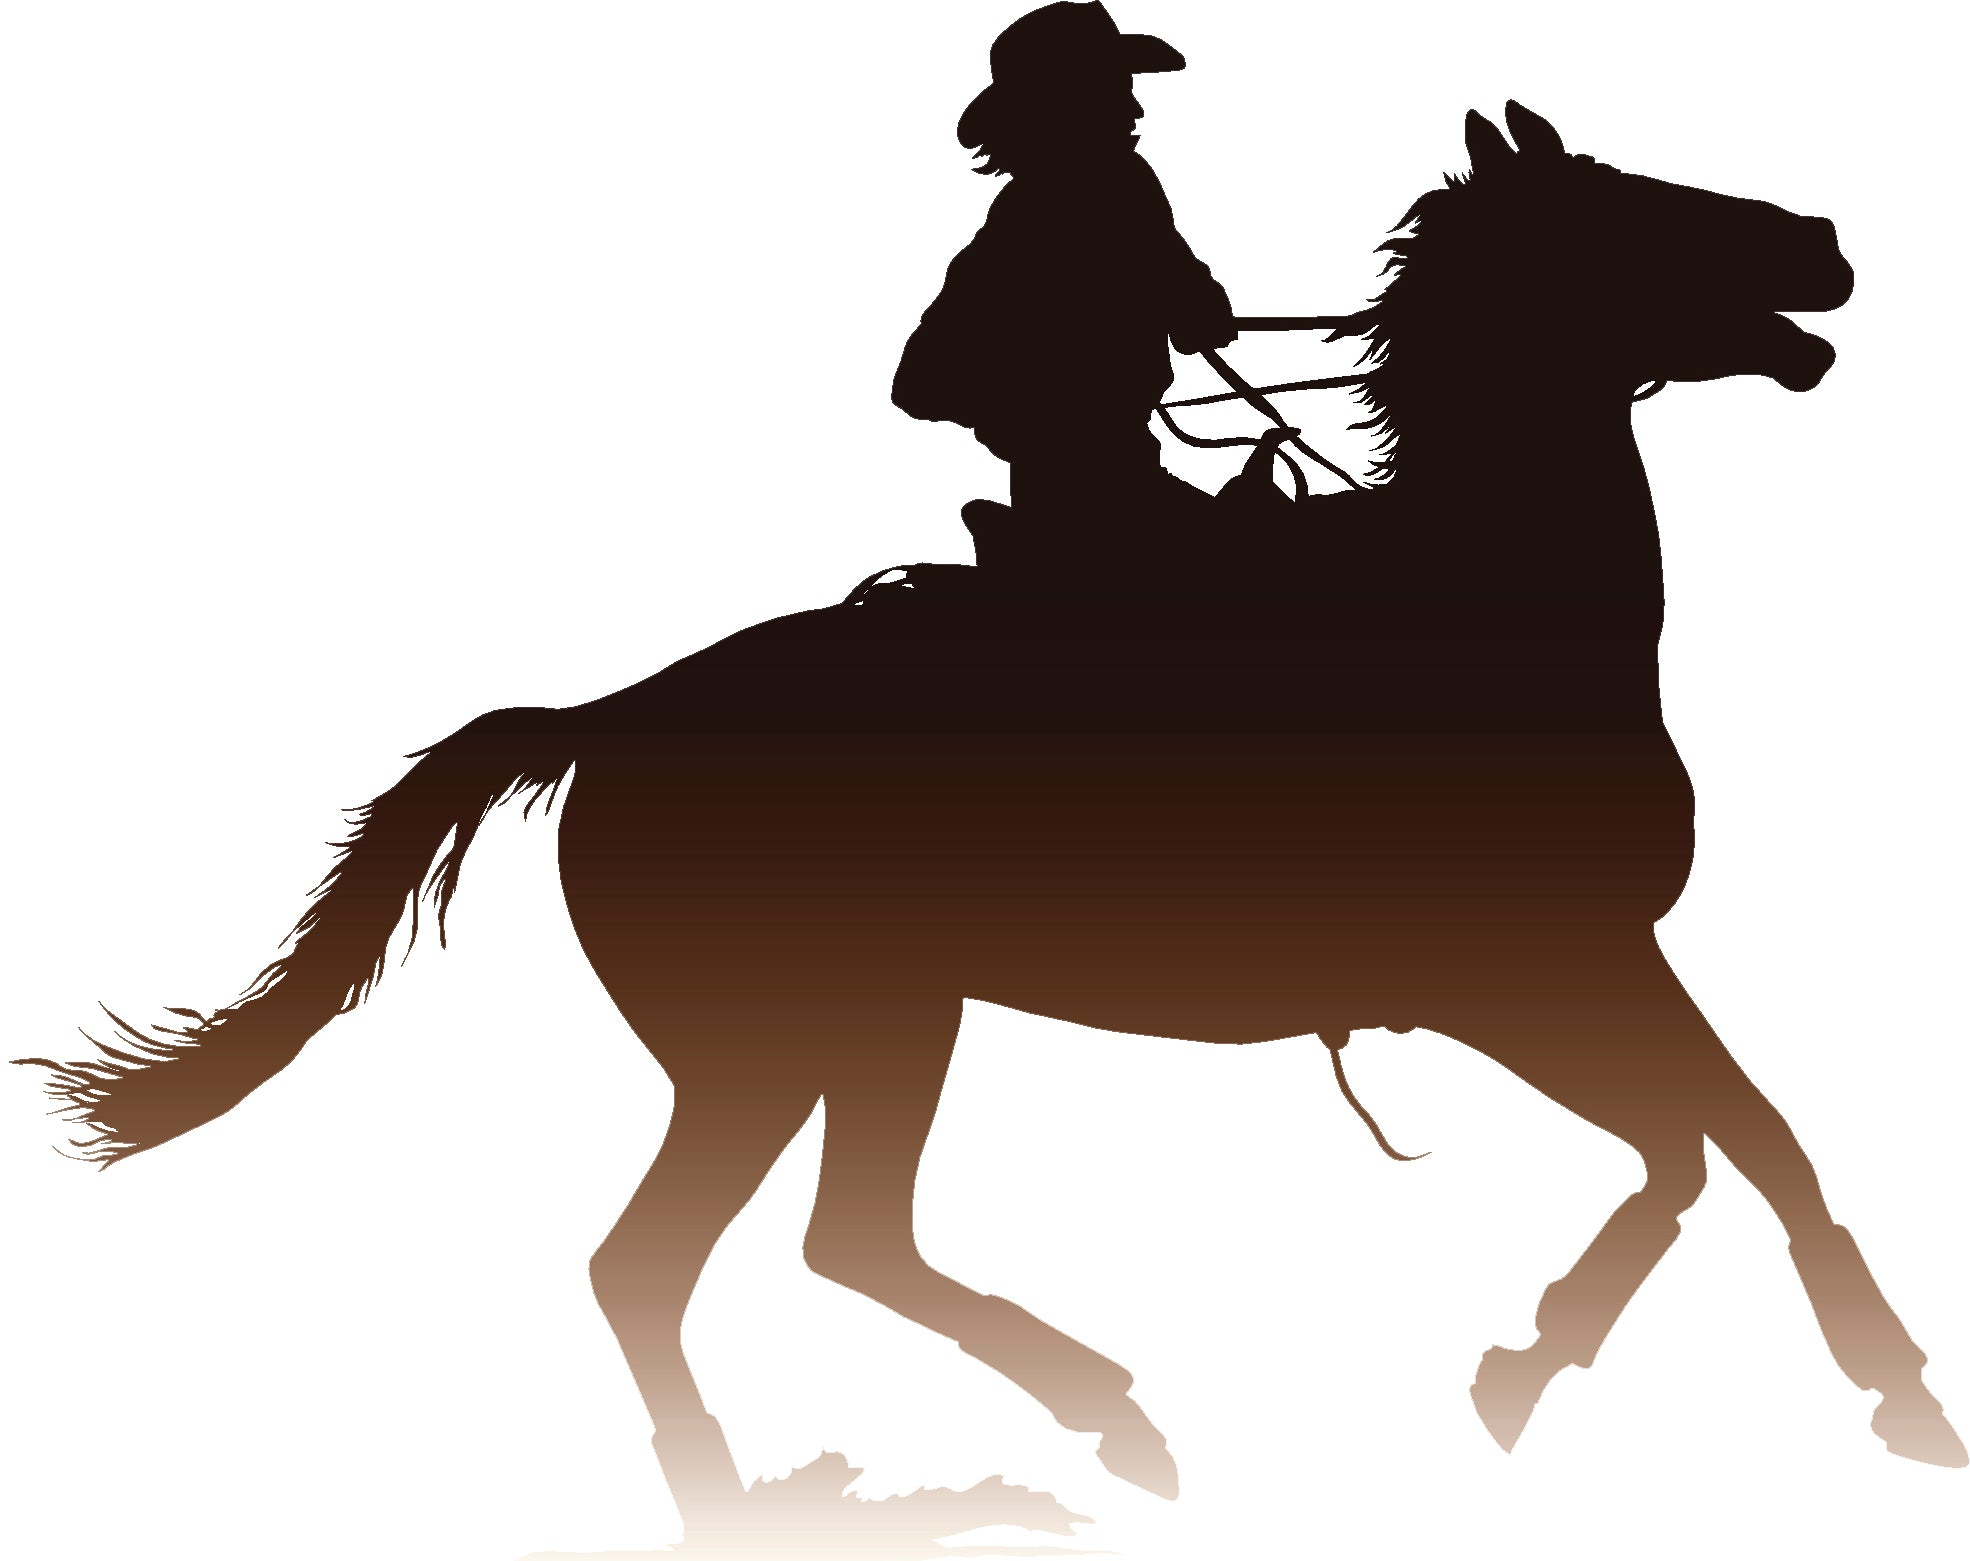 Cool Western Cowboy Sunset Ombre Cartoon Silhouette #7 Vinyl Decal Sticker